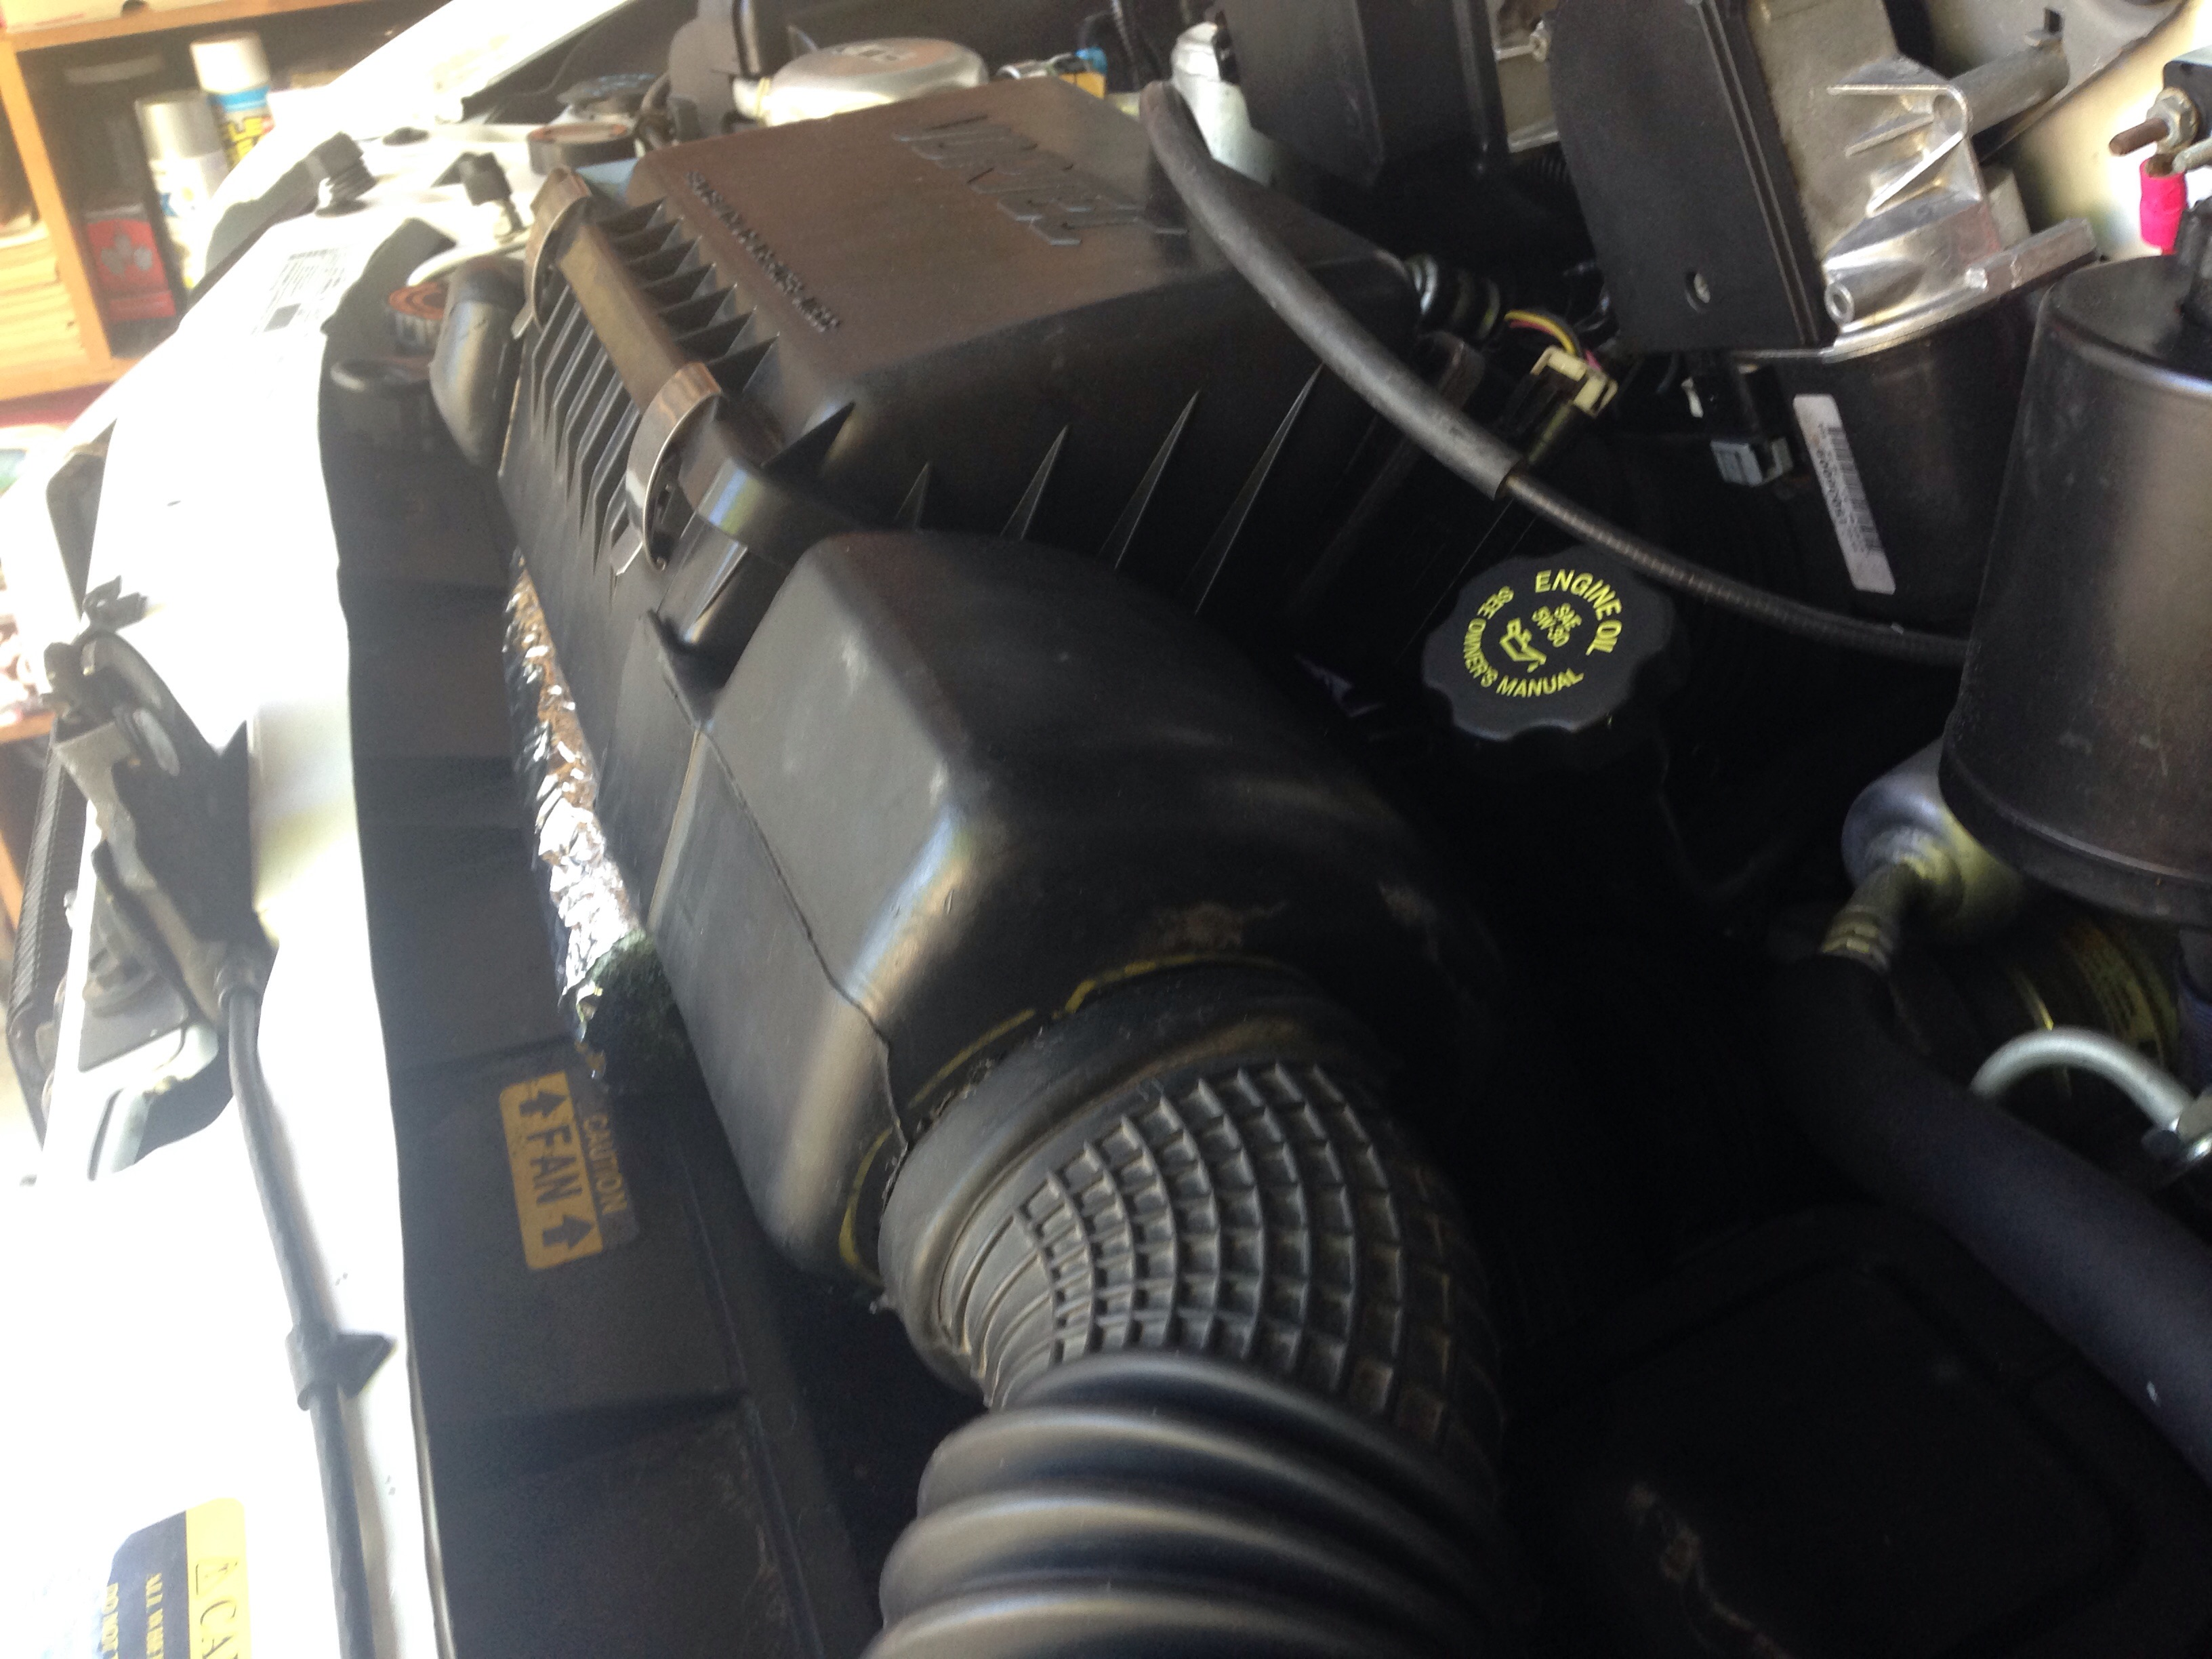 2nd Air Intake